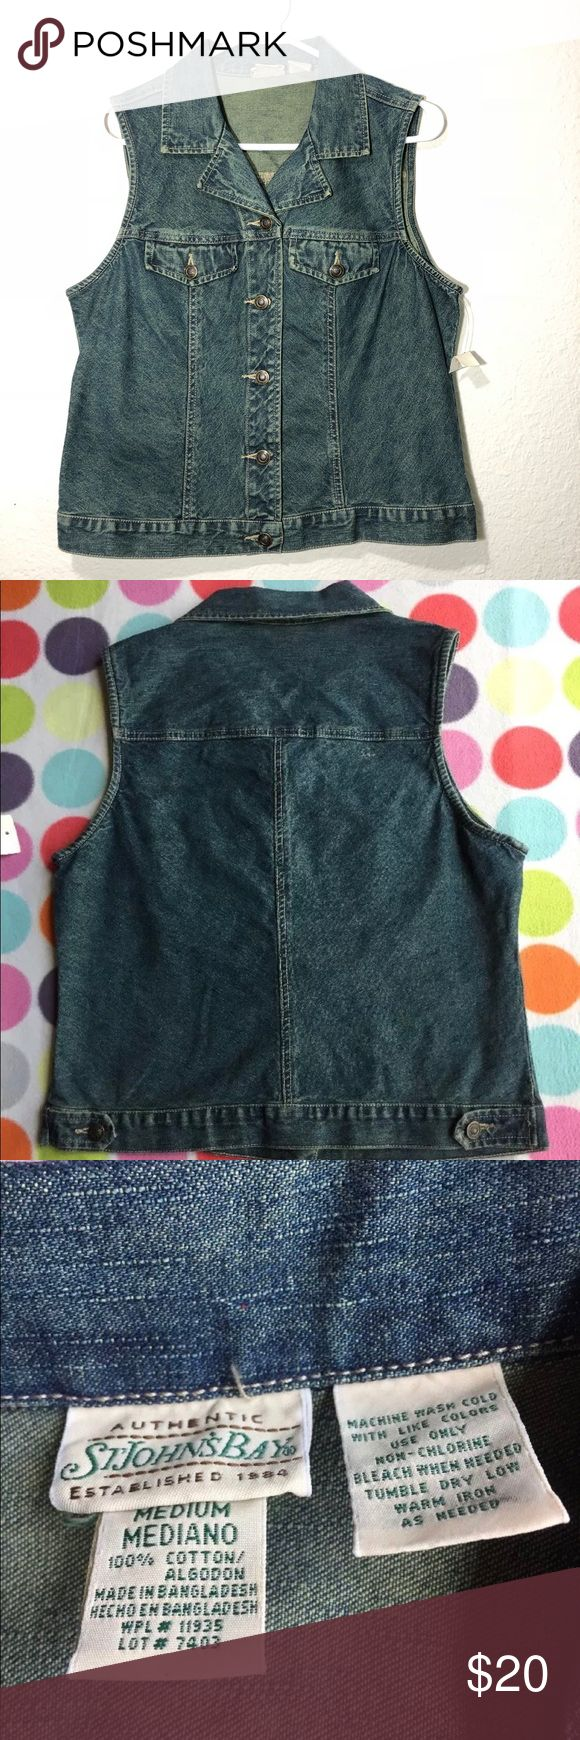 St John's Bay Women's sleeveless jean jacket sz M Good condition. NWT. No rips or tears. Please see pictures for measurements and condition. 100% cotton st john's bay Jackets & Coats Jean Jackets